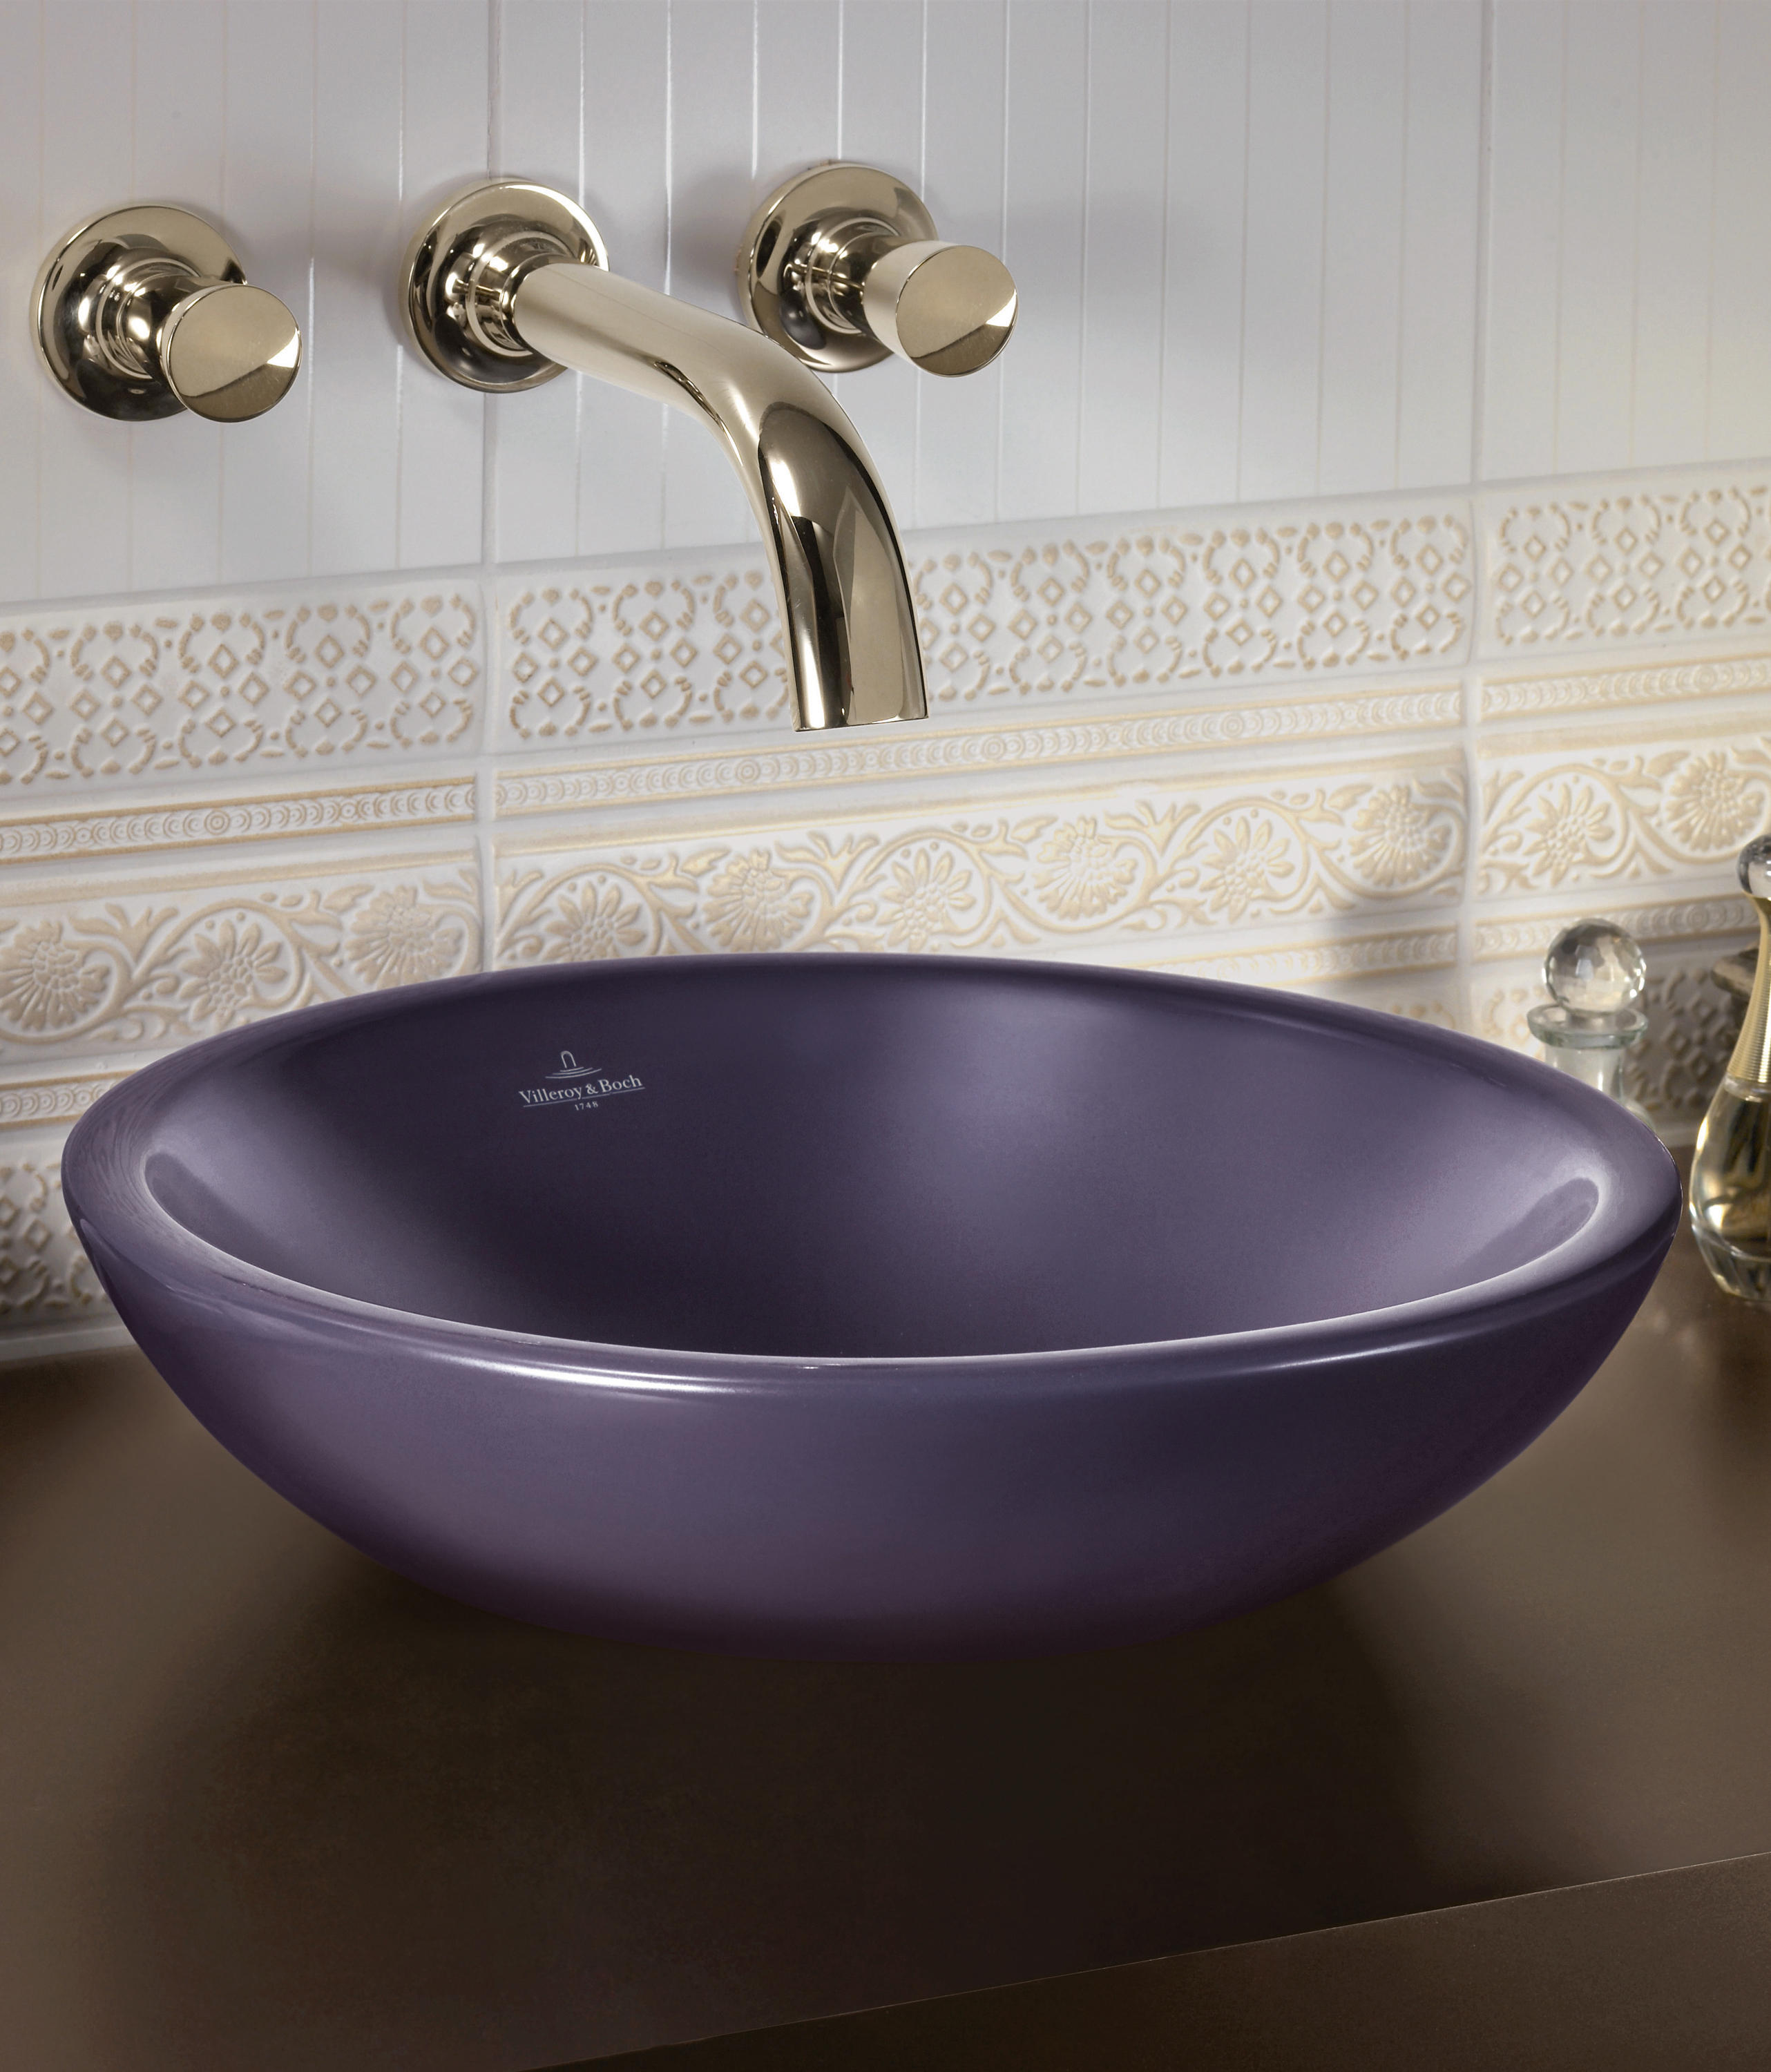 Villeroy and boch bathroom sink - Loop Friends Surface Mounted Washbasin By Villeroy Boch